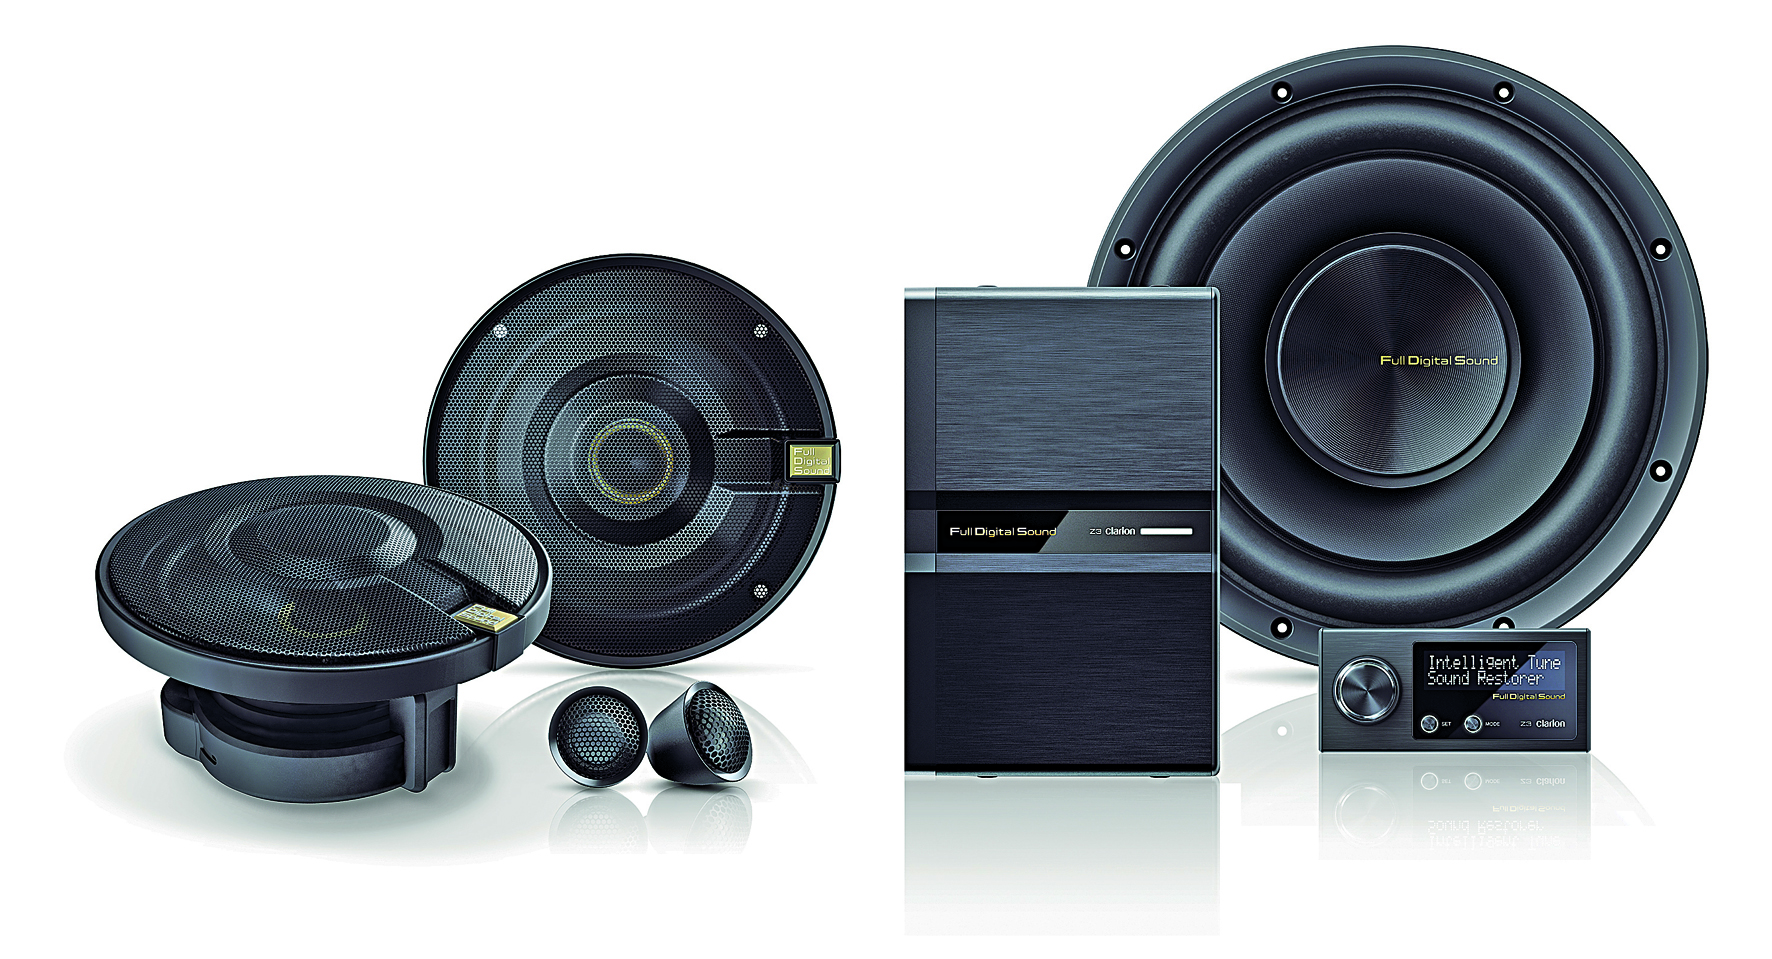 clarion launches new full digital sound system adam. Black Bedroom Furniture Sets. Home Design Ideas